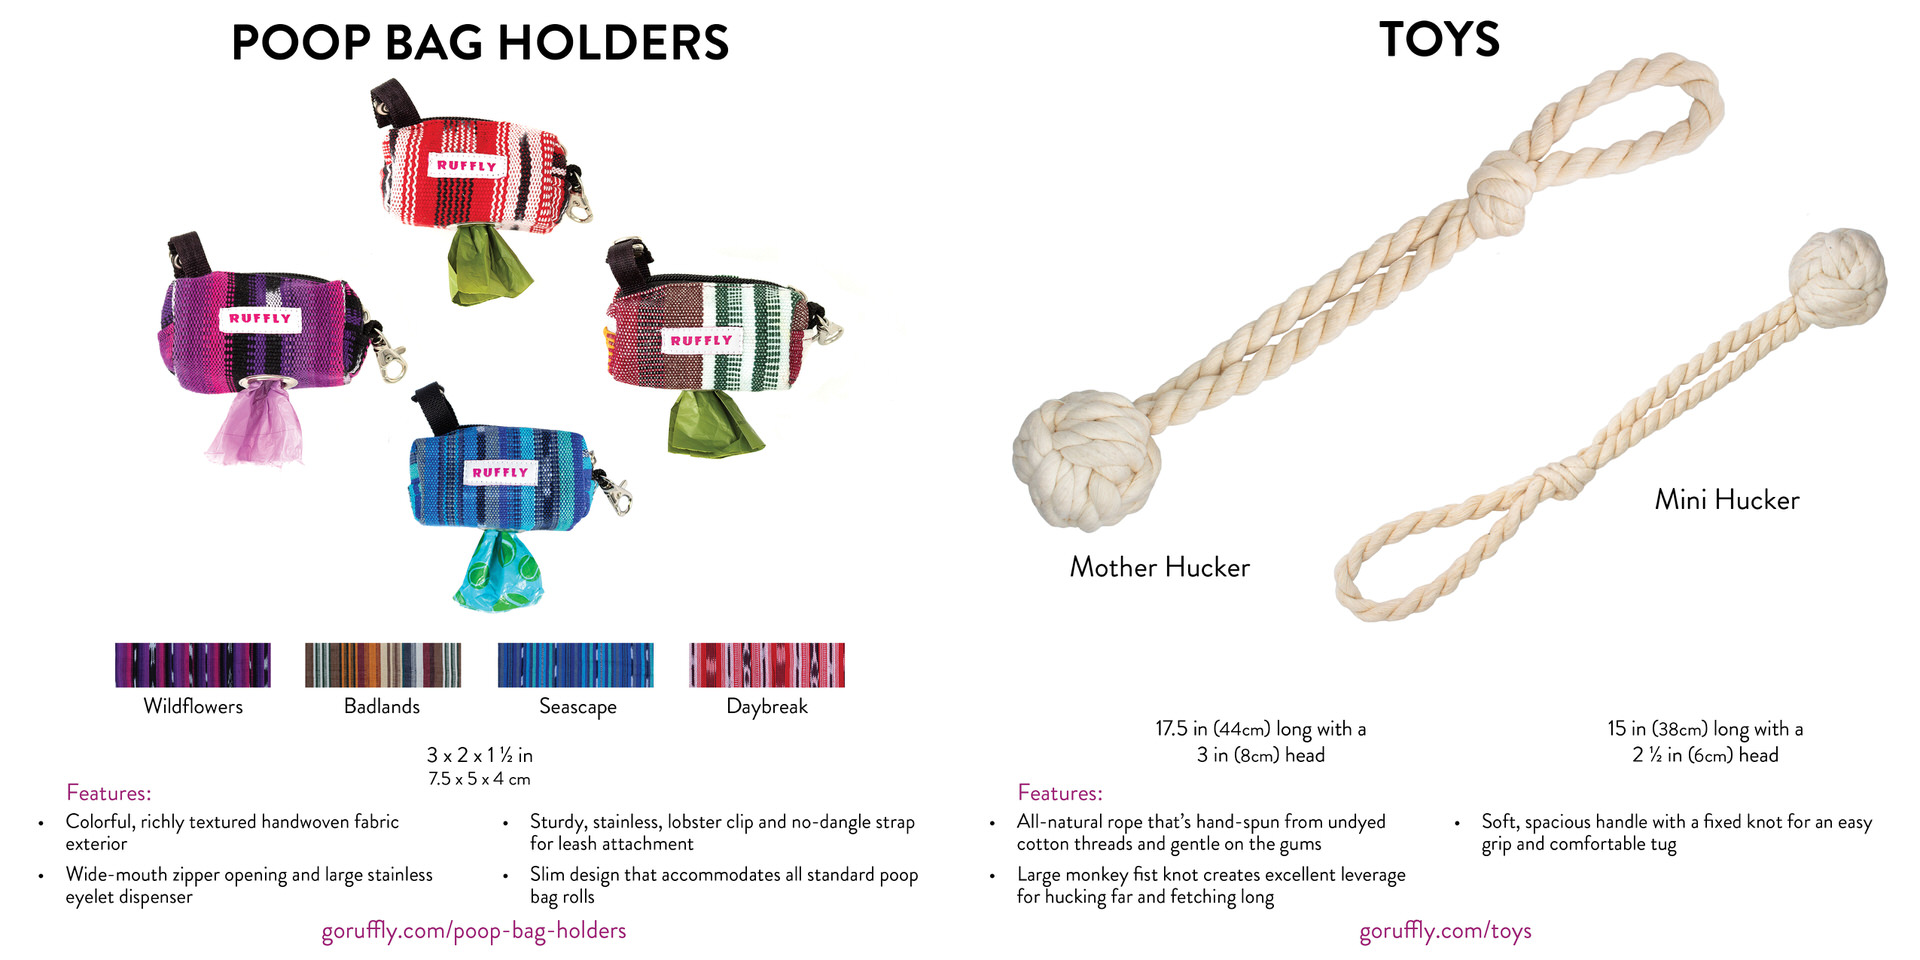 Pages 14 and 15 of RUFFLY's lookbook catalogue of dog gear feature woven poop bag holders and rope dog toys